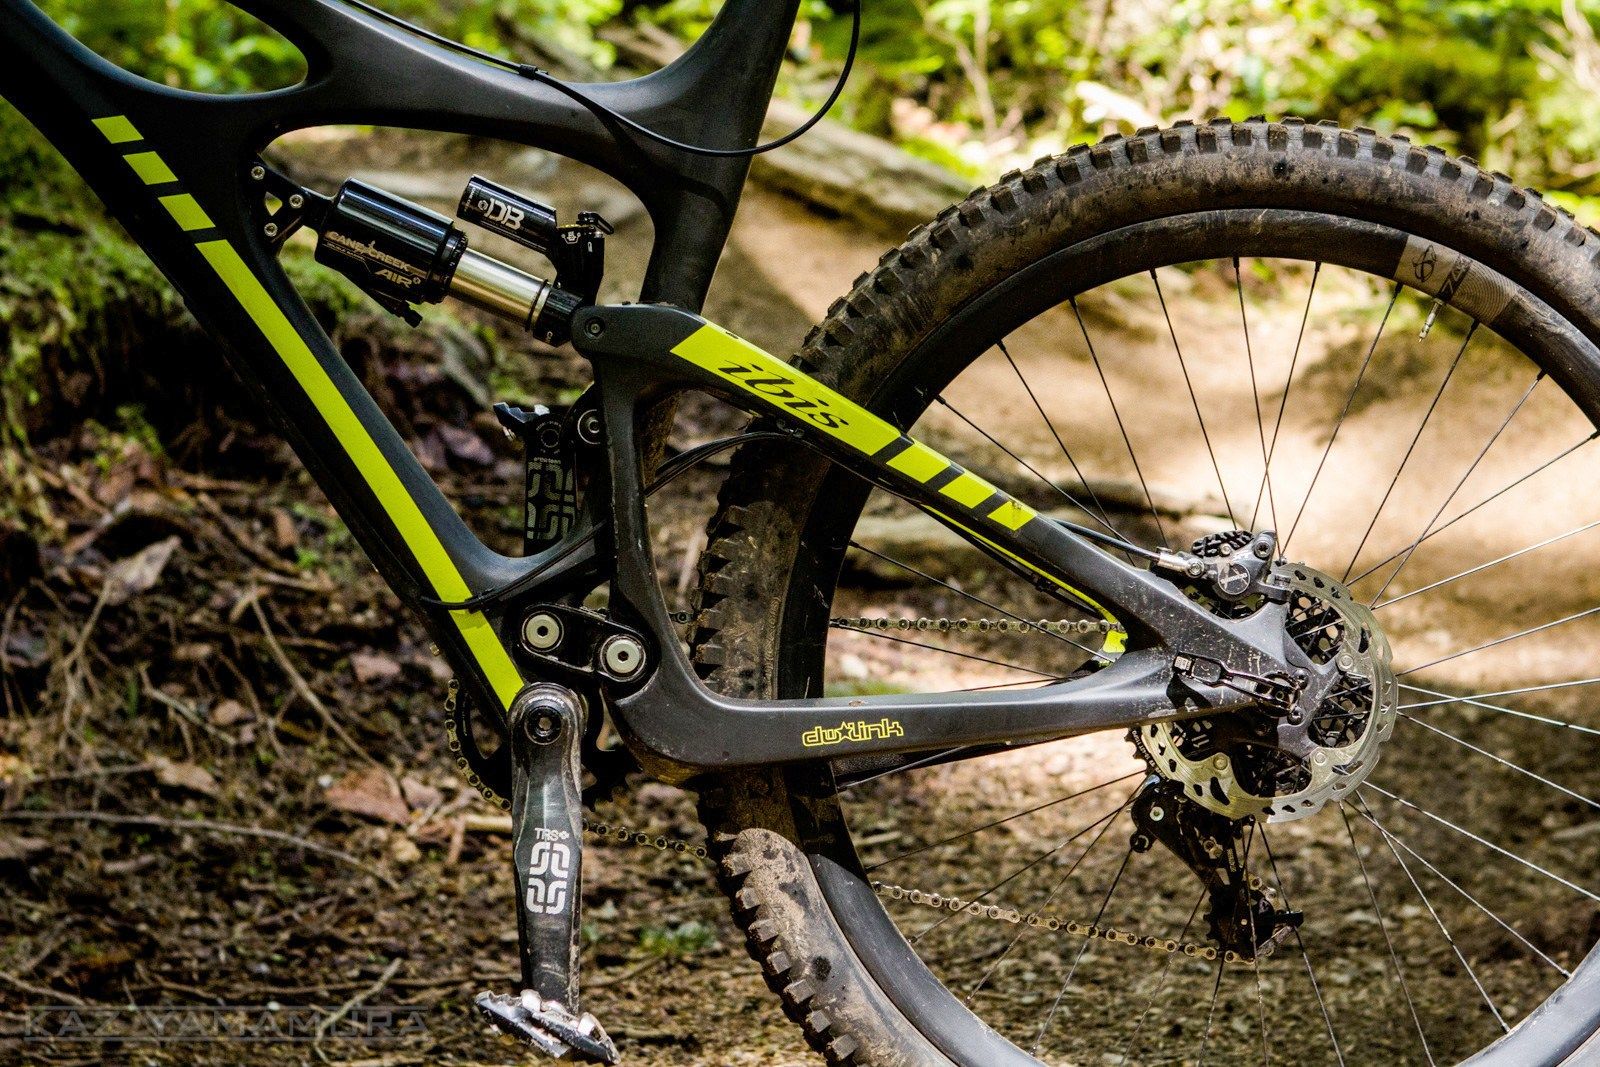 There are a couple of issues with the tight quarters of the HDR 650's configuration; challenging access to the Cane Creek DBair's adjustment knobs and no space for a bottle cage within reach. You can however mount one beneath the downtube if you are desperate.